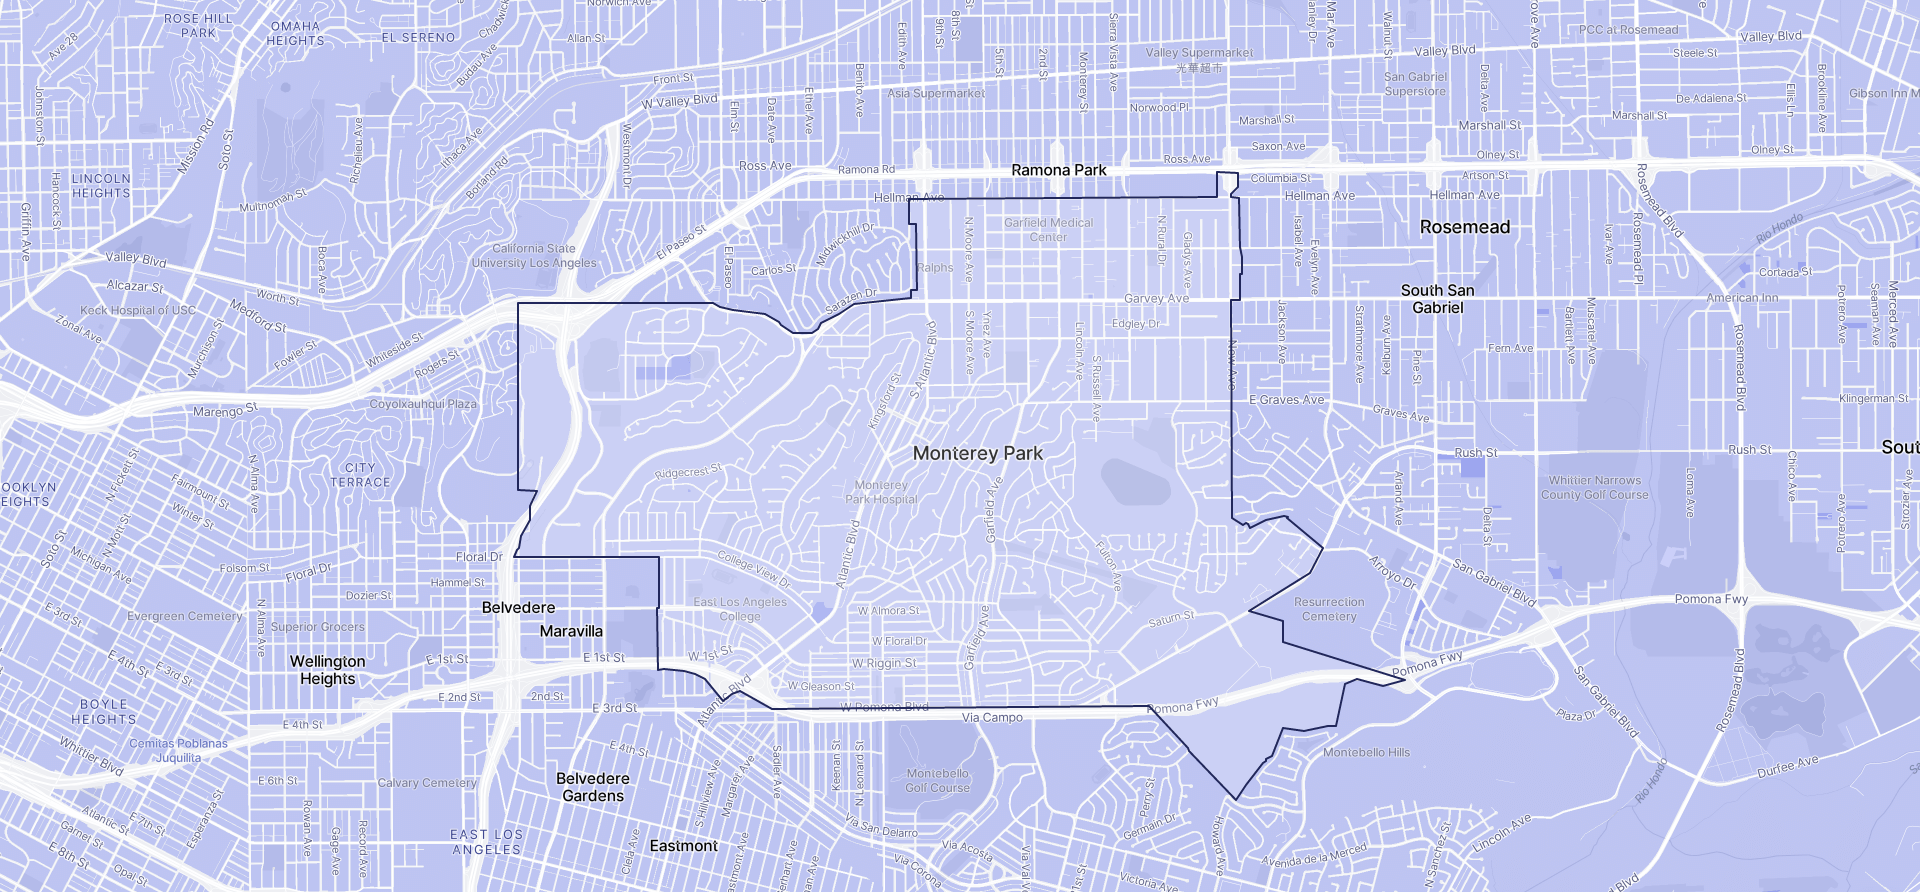 Image of Monterey Park boundaries on a map.